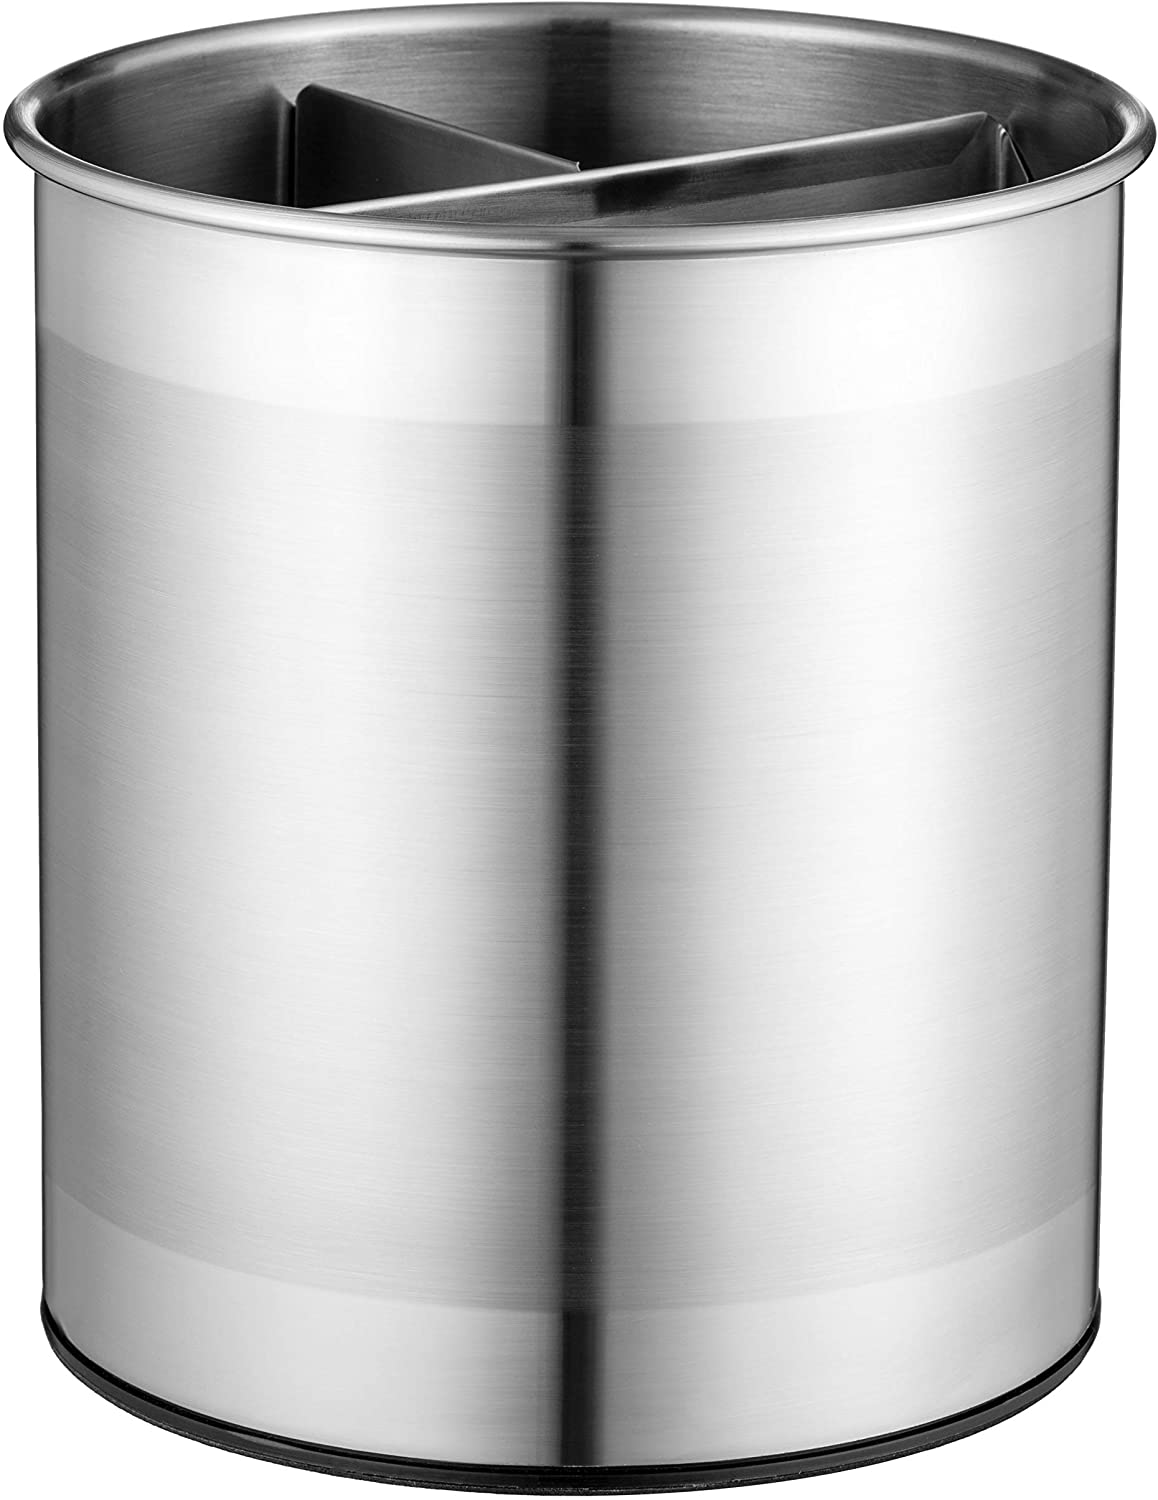 Extra-Large Stainless Steel Kitchen Utensil Holder - 360° Rotating Utensil Caddy - Weighted Base for Stability - Utensil Crock With Removable Divider for Easy Cleaning - Countertop Utensil Organizer.: Kitchen & Dining